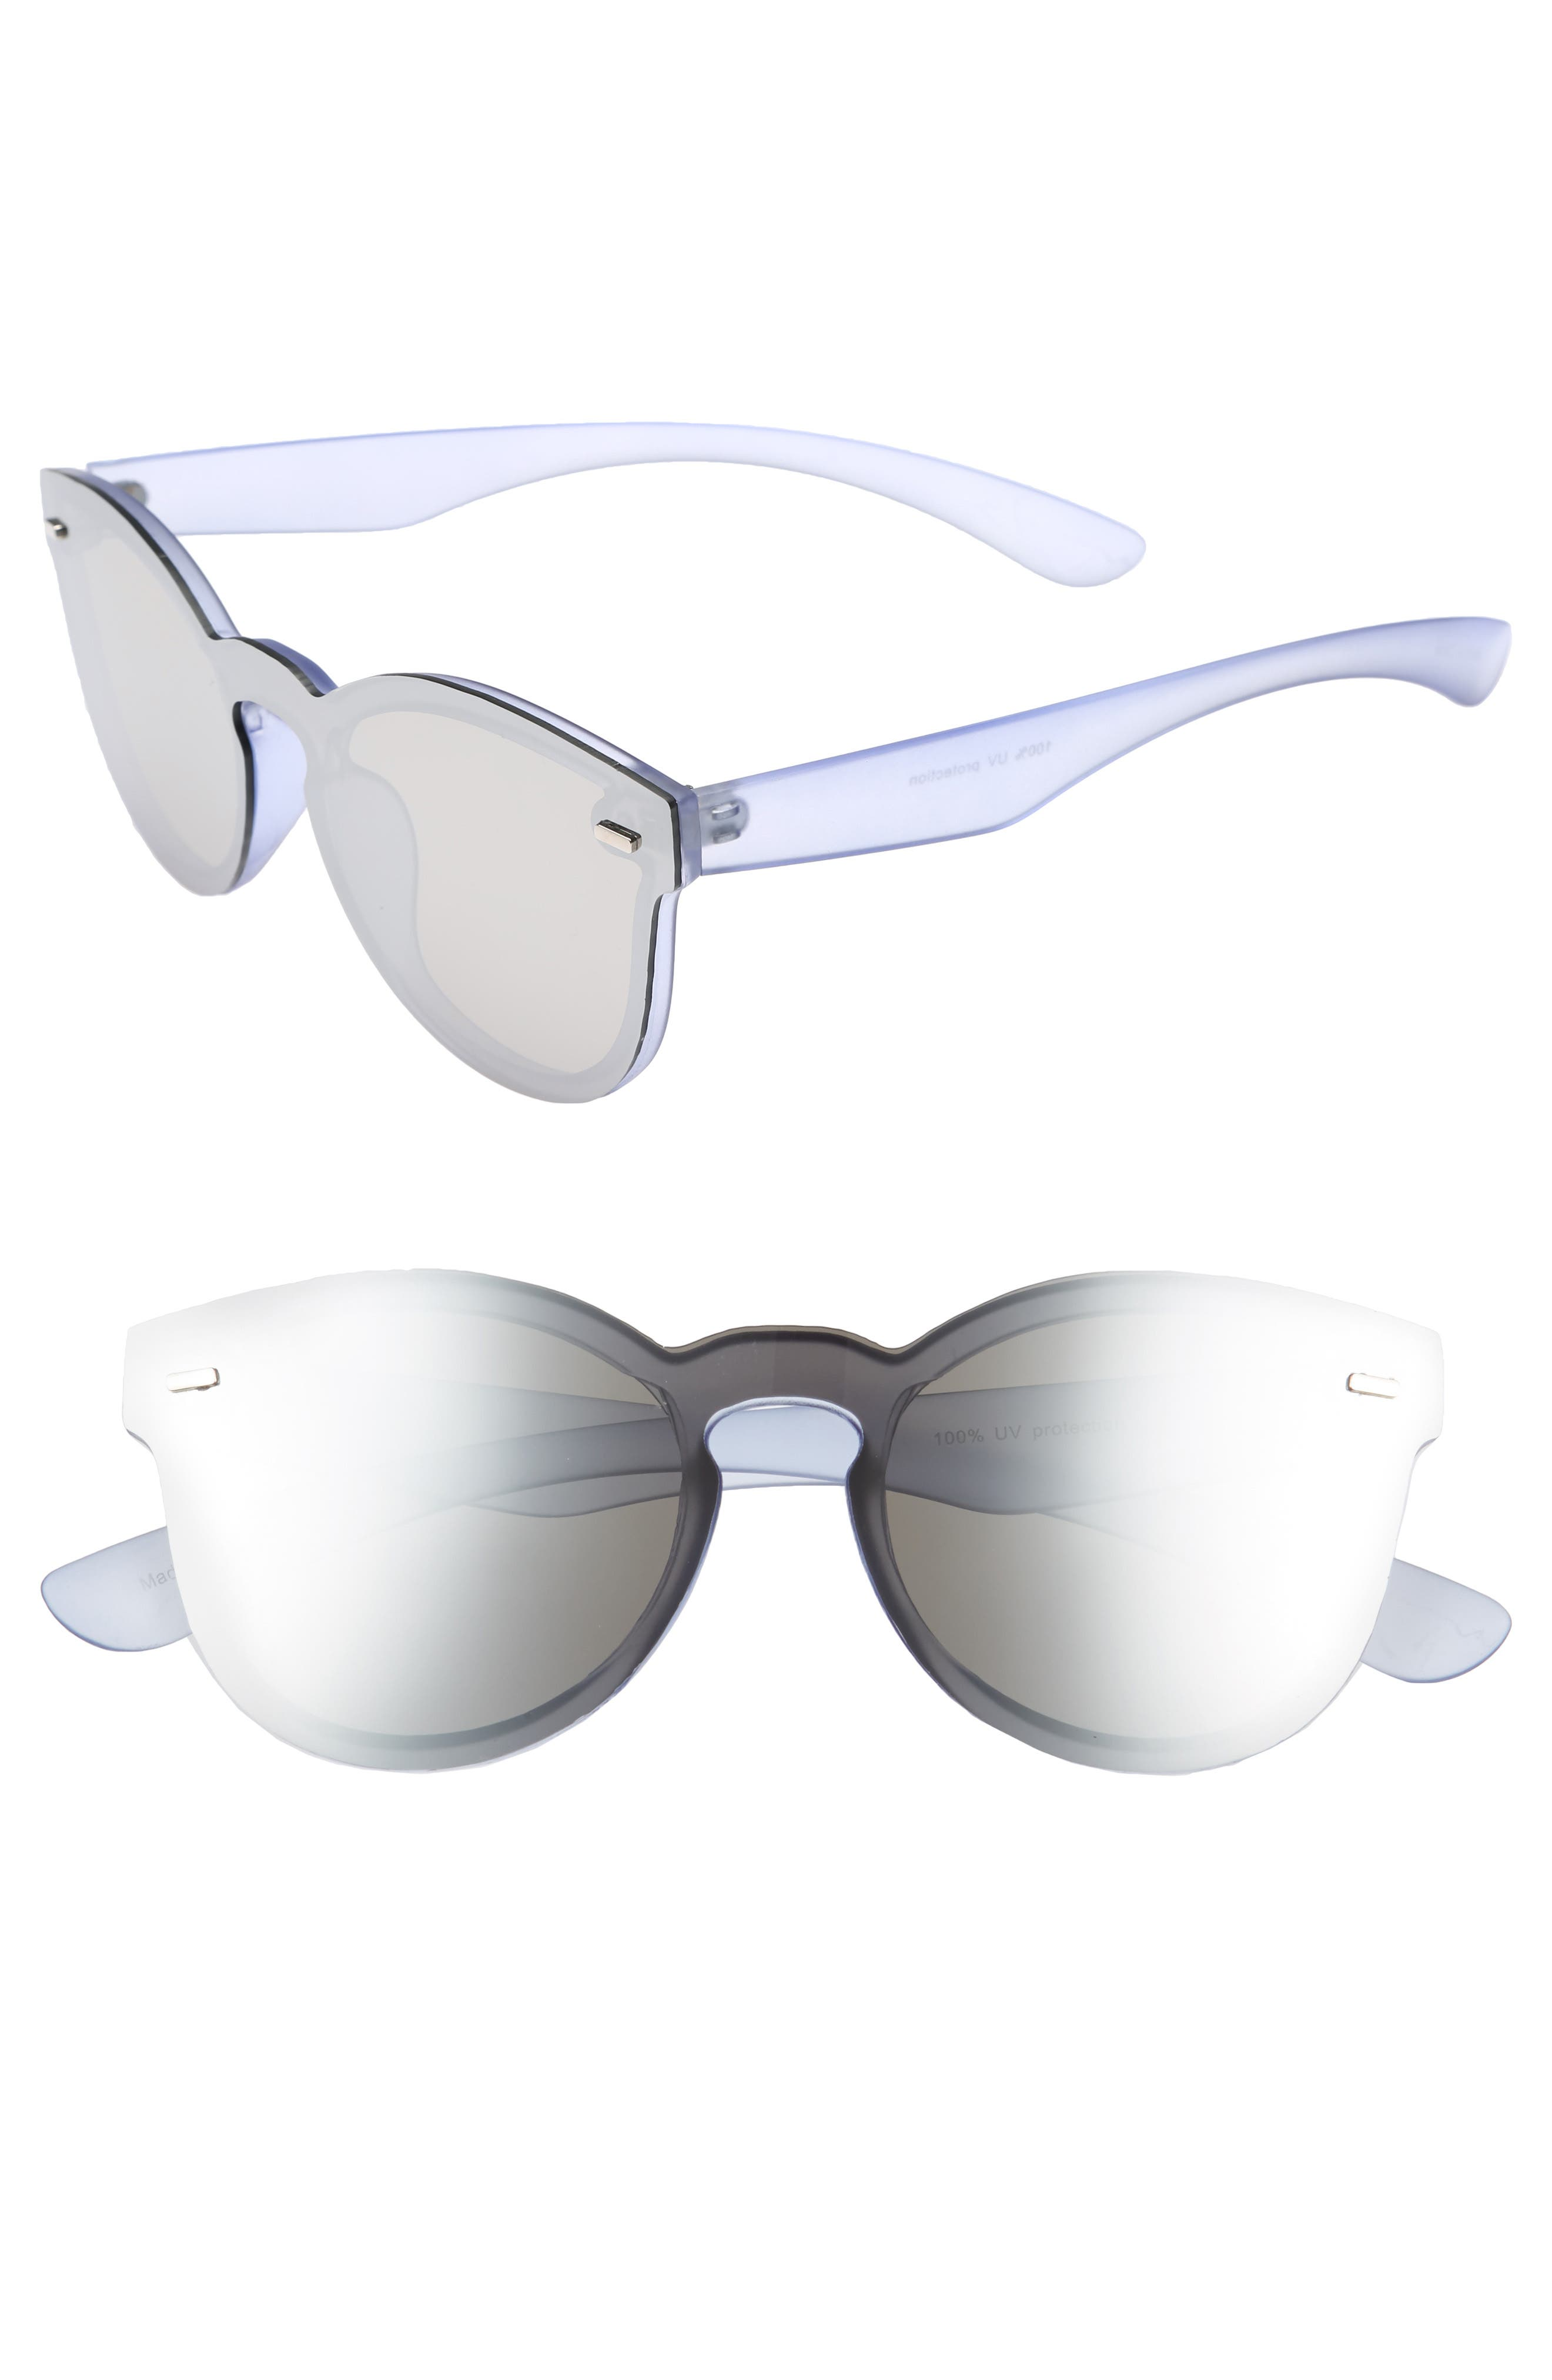 50mm Mirrored Lens Rimless Sunglasses,                         Main,                         color, 400